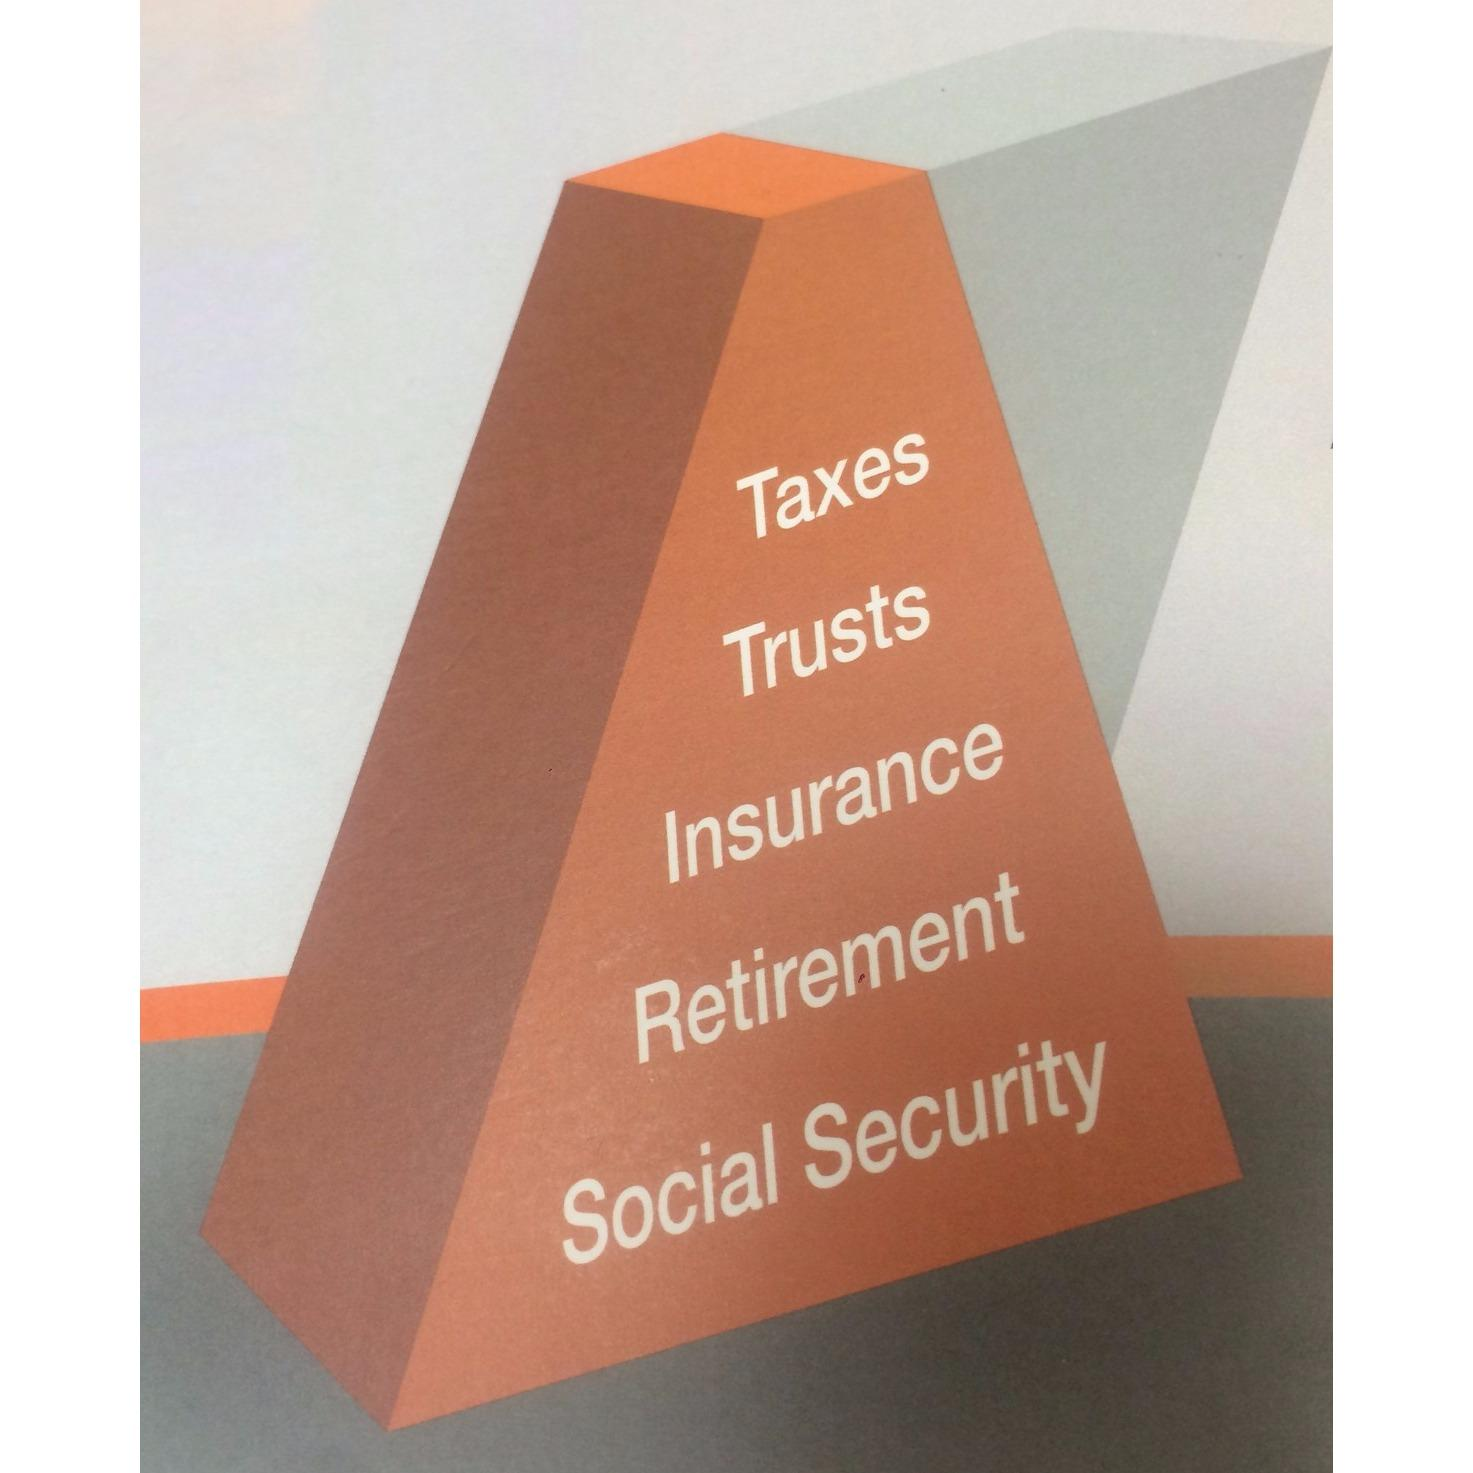 Asset Preservation Tax & Retirement Services - MI